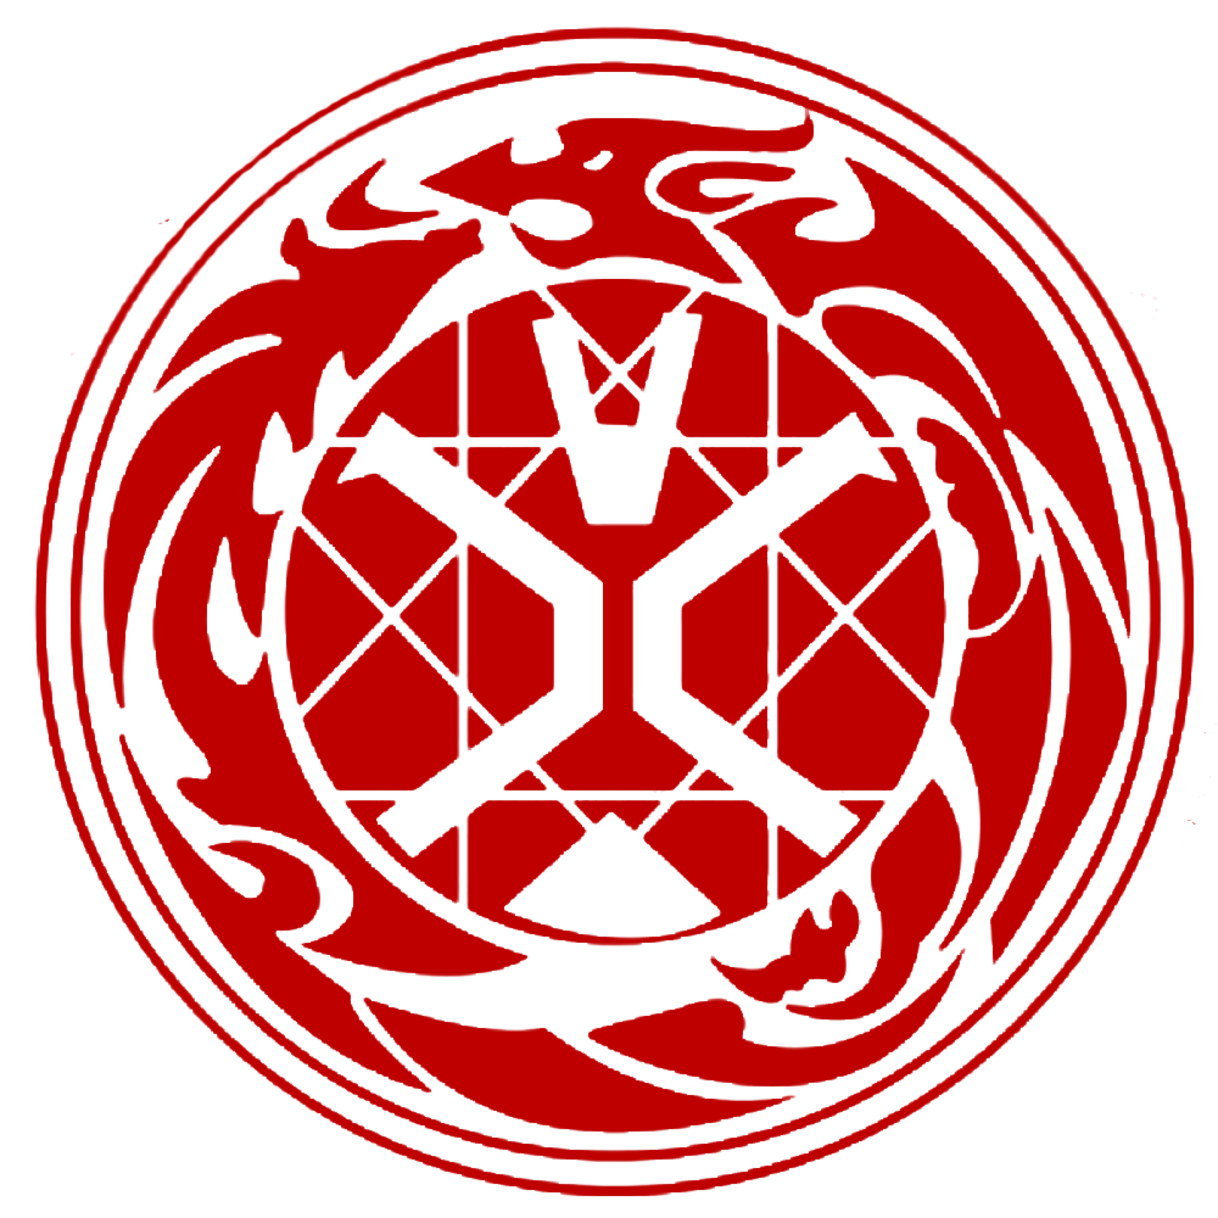 仮面ライダーウィザード | Kamen Rider Wizard Symbol Download